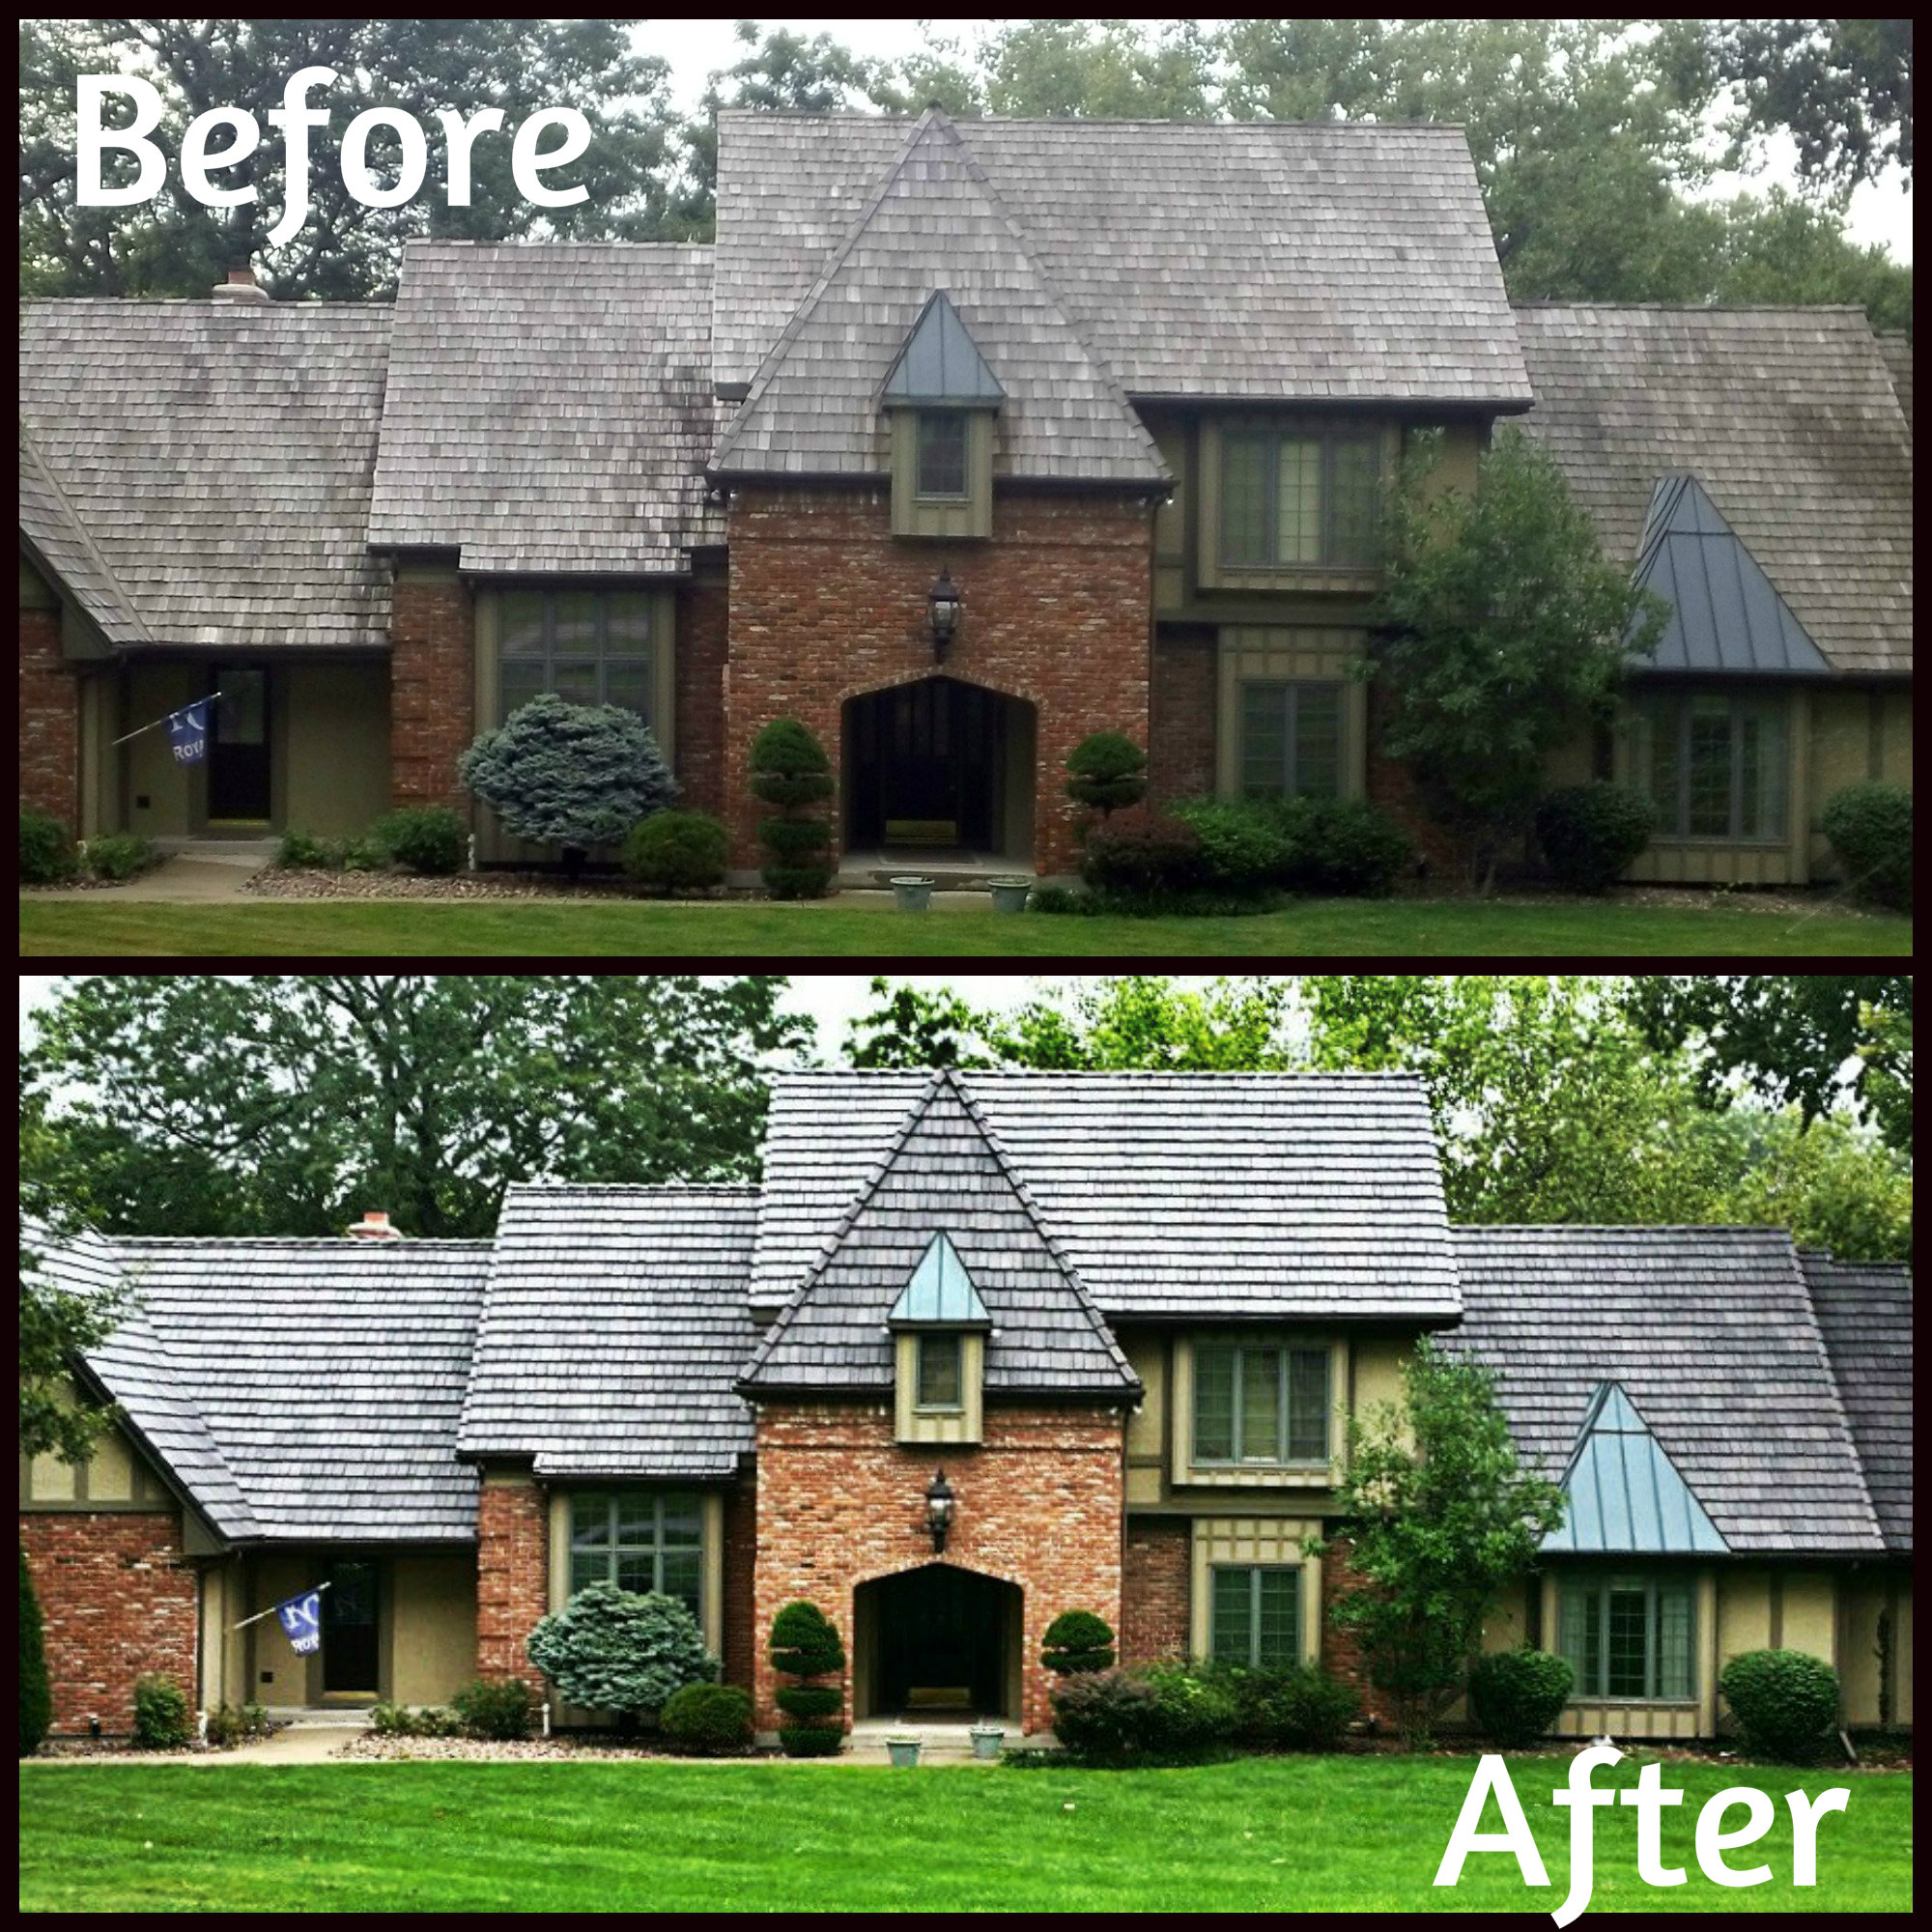 Ryan-Construction-Systems-Before-and-After-Roof